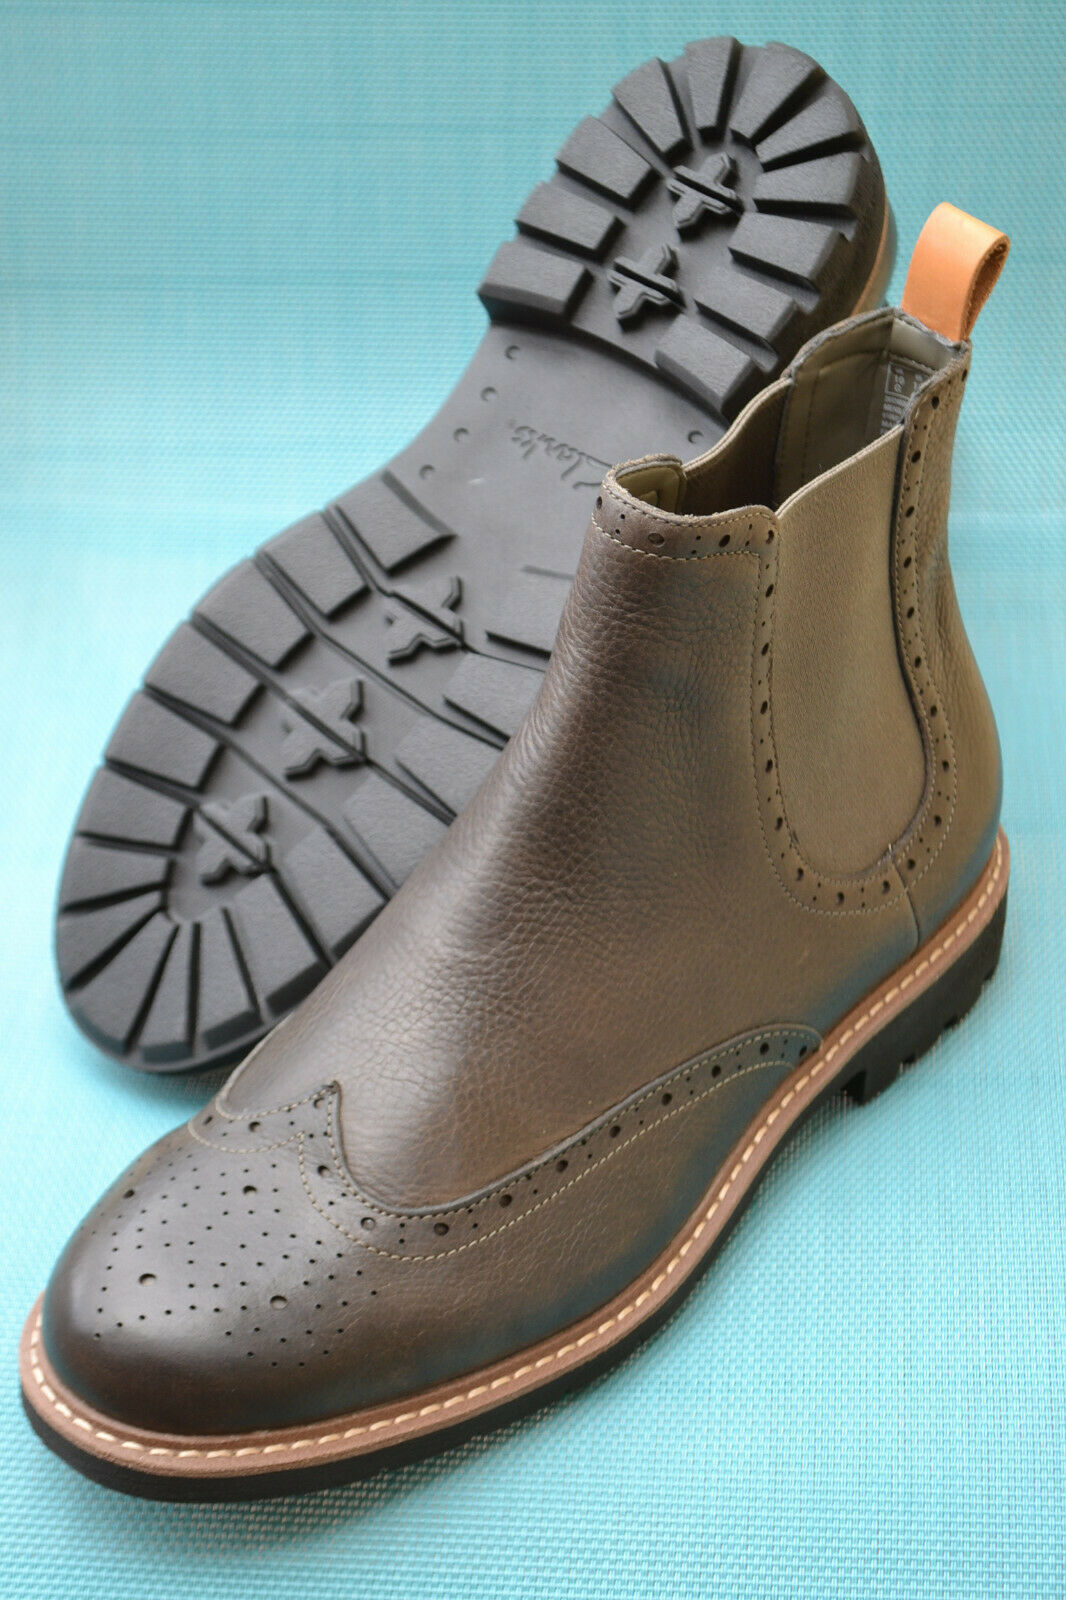 Clarks BNIB Mens Chelsea Boots BATCOMBE TOP Taupe Leather UK 8 / 42